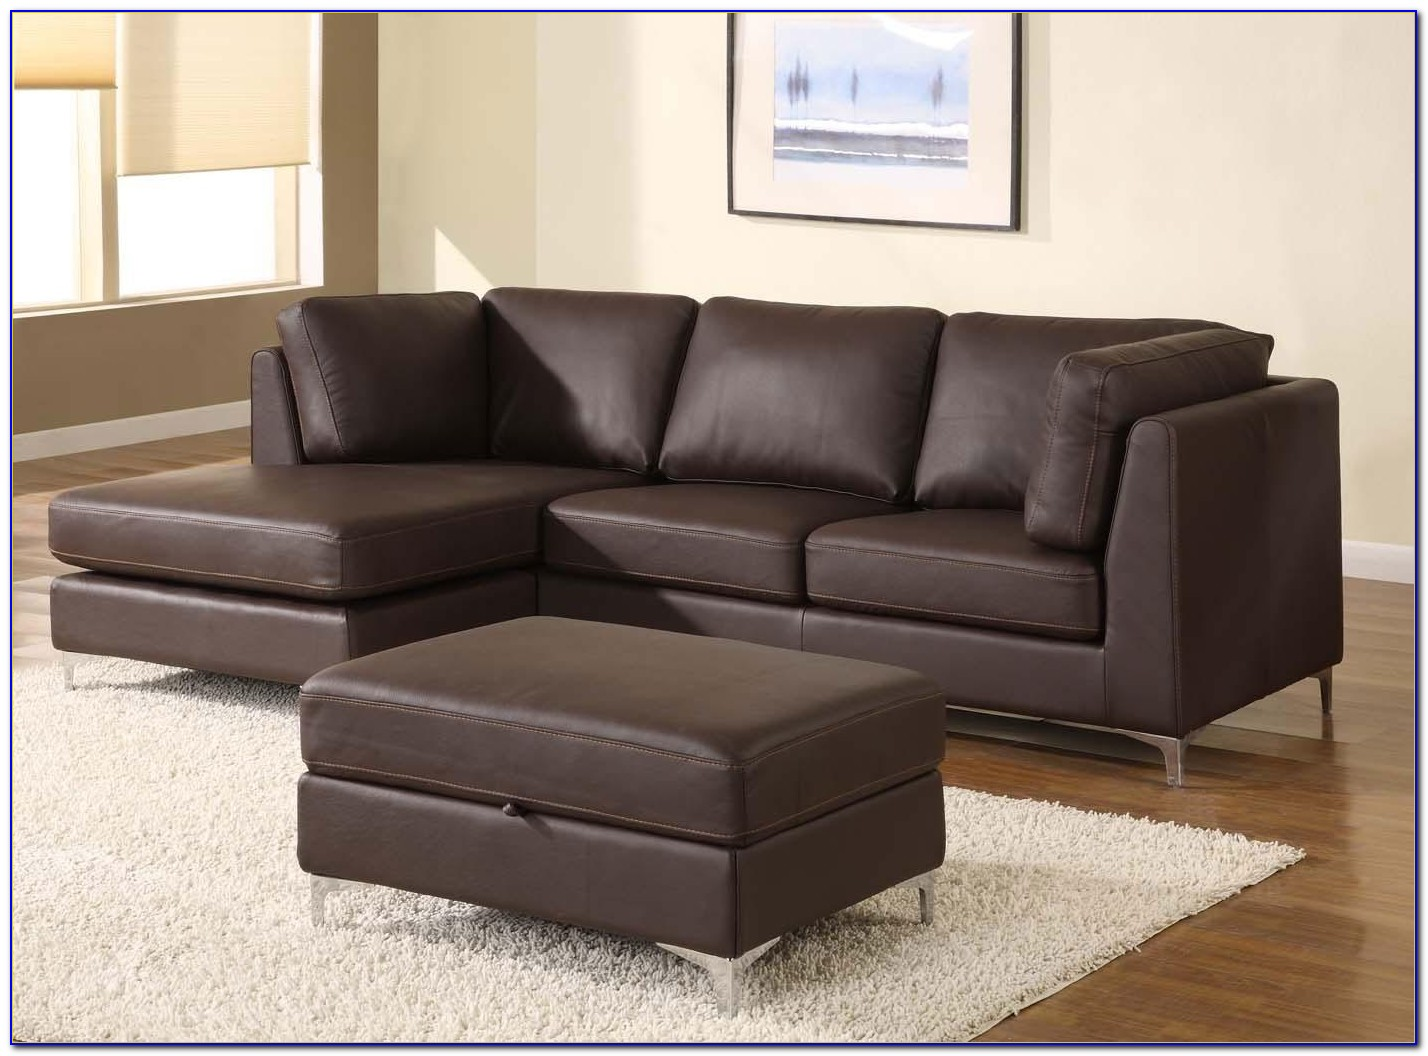 Living Room Furniture Sectional Sets